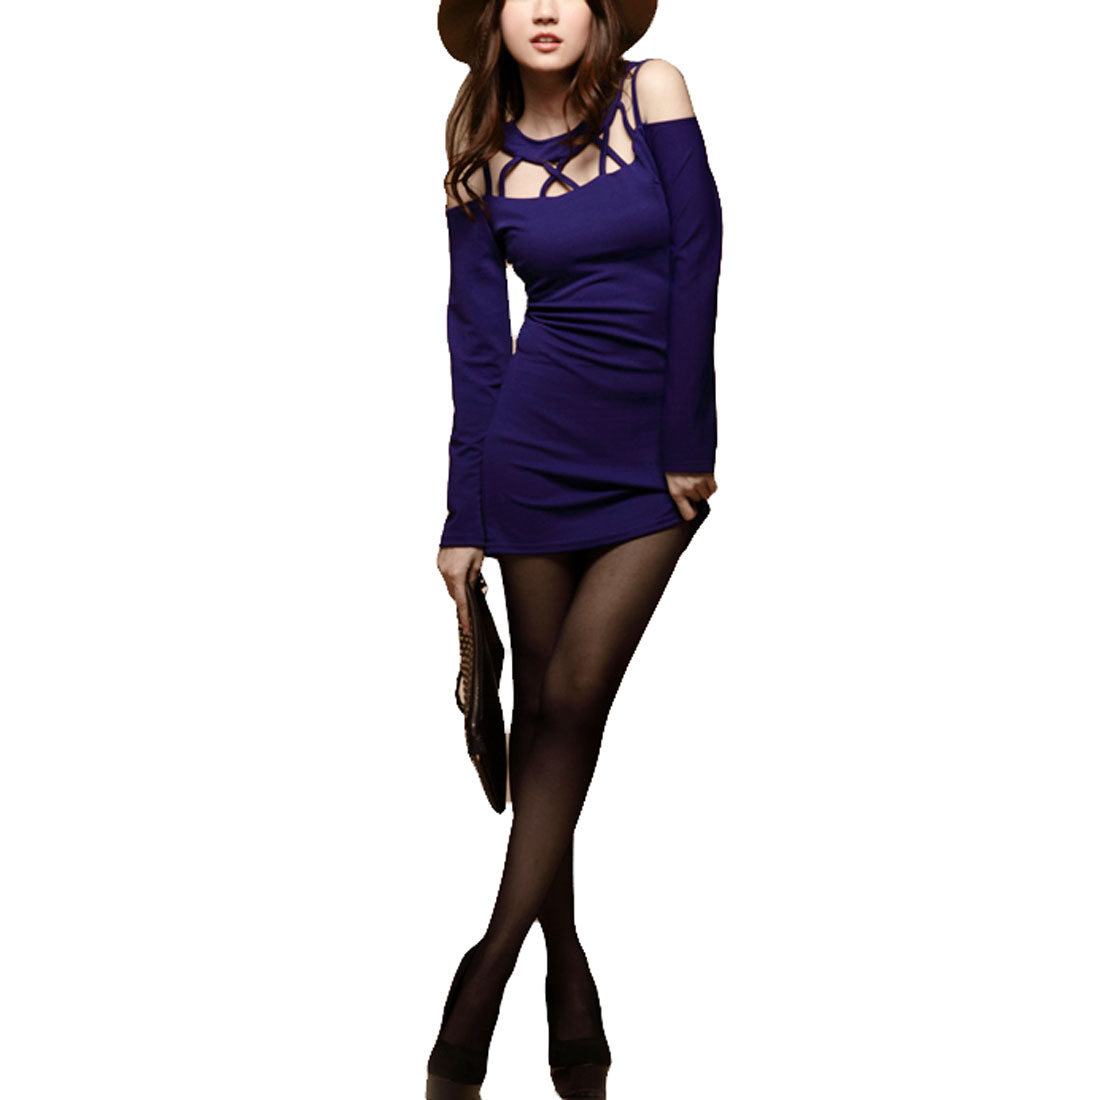 Purple Crossover Cut Out Back Closefitting Tunic Shirt XS for Woman